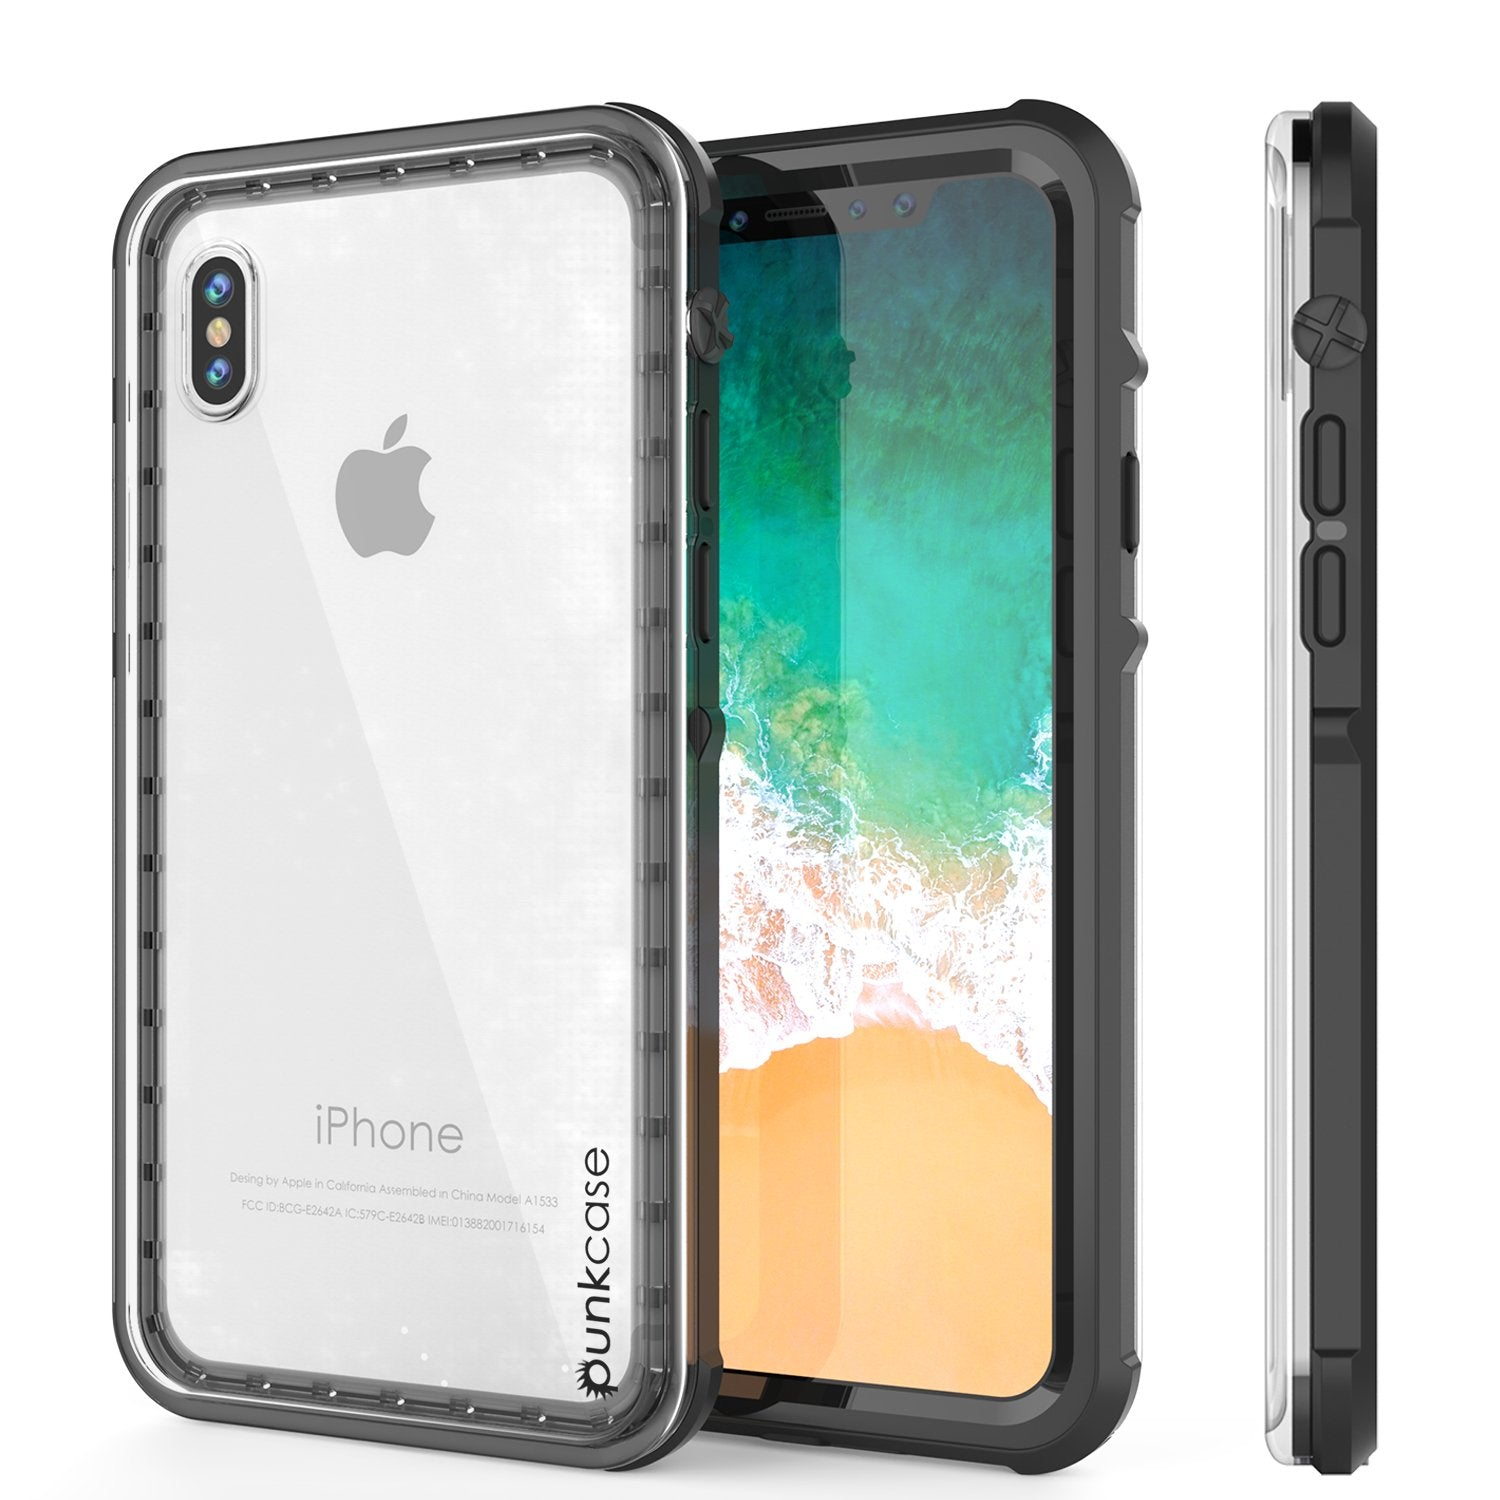 iPhone XS Max Case, PUNKCase [CRYSTAL SERIES] Protective IP68 Certified Cover [BLACK]